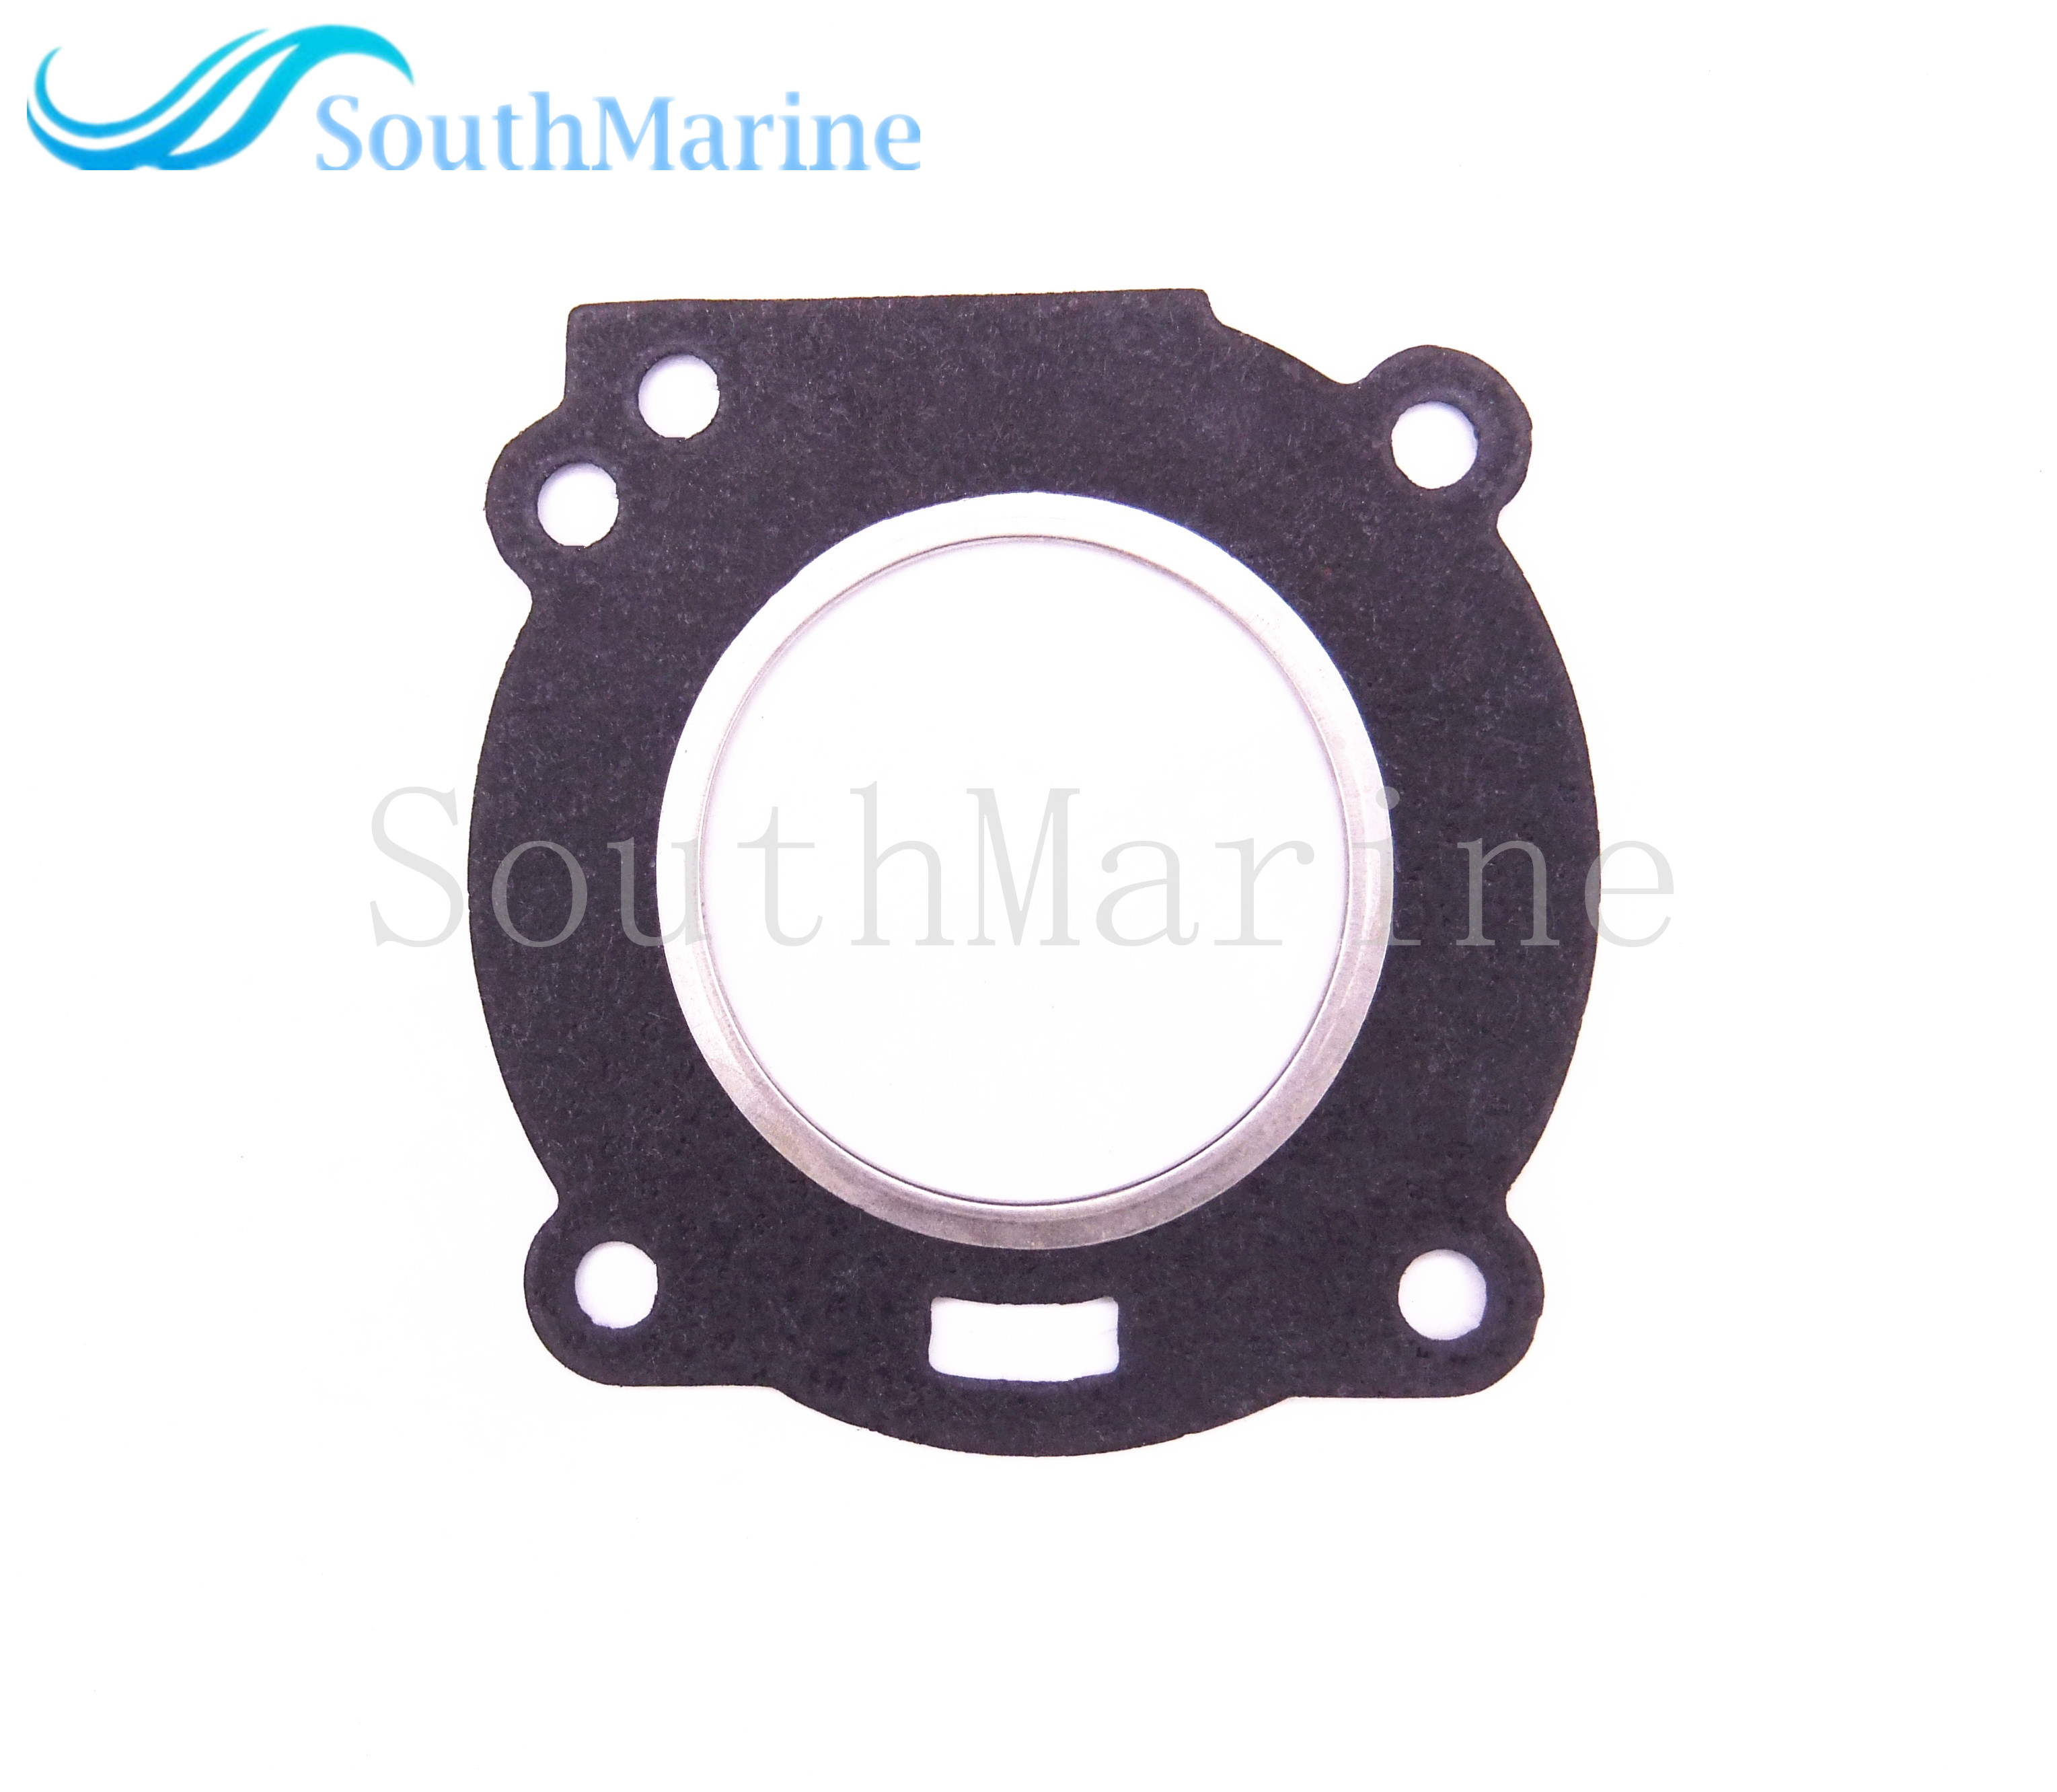 Boat Motor 309-01005-1 30901-0051M Cylinder Head Gasket for Tohatsu Nissan 2-Stroke 2.5HP 3.5HP Outboard Engine